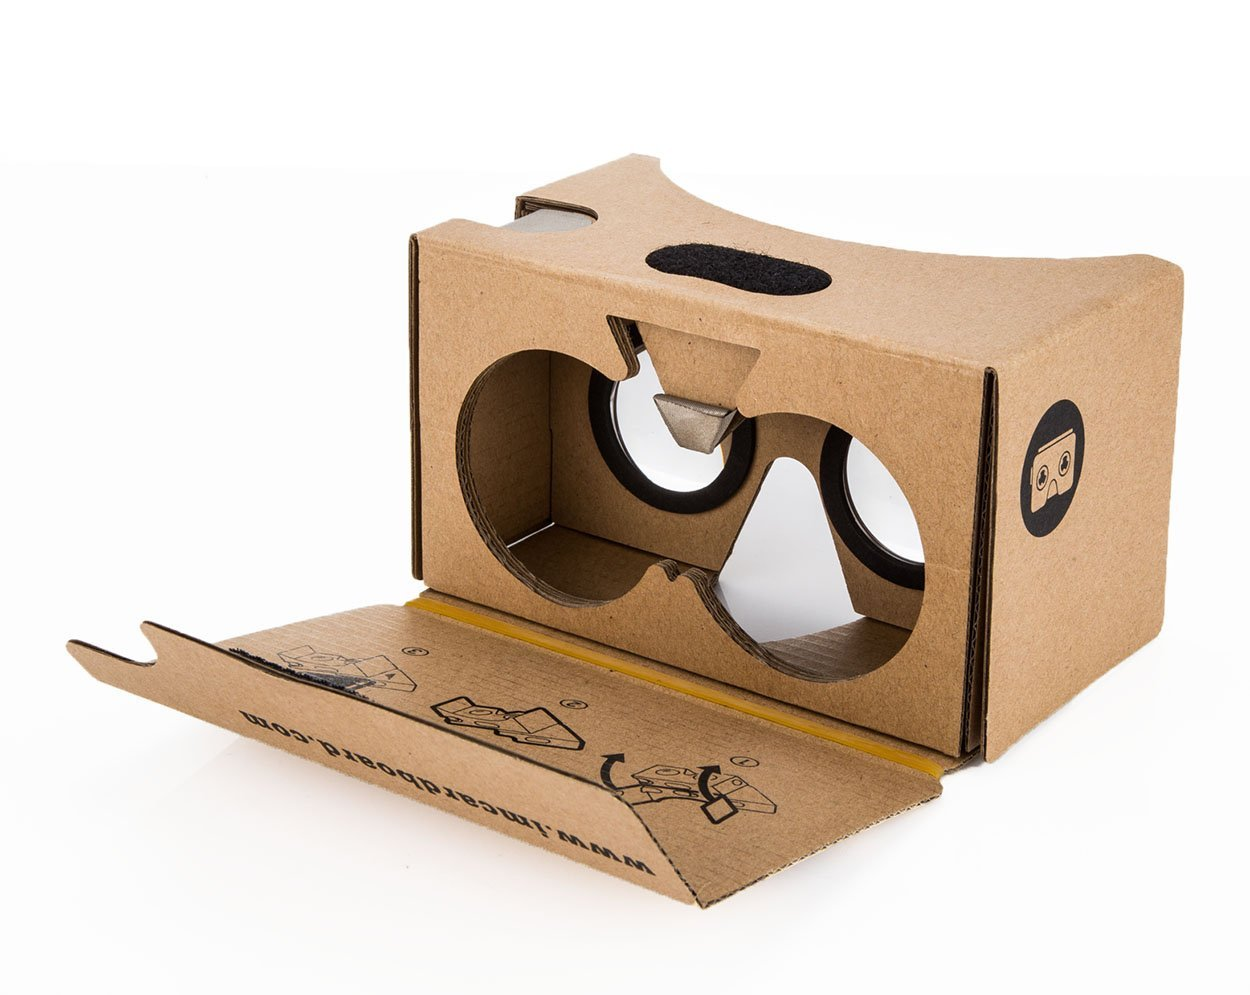 Google Cardboard-- use your phone to create VR experience